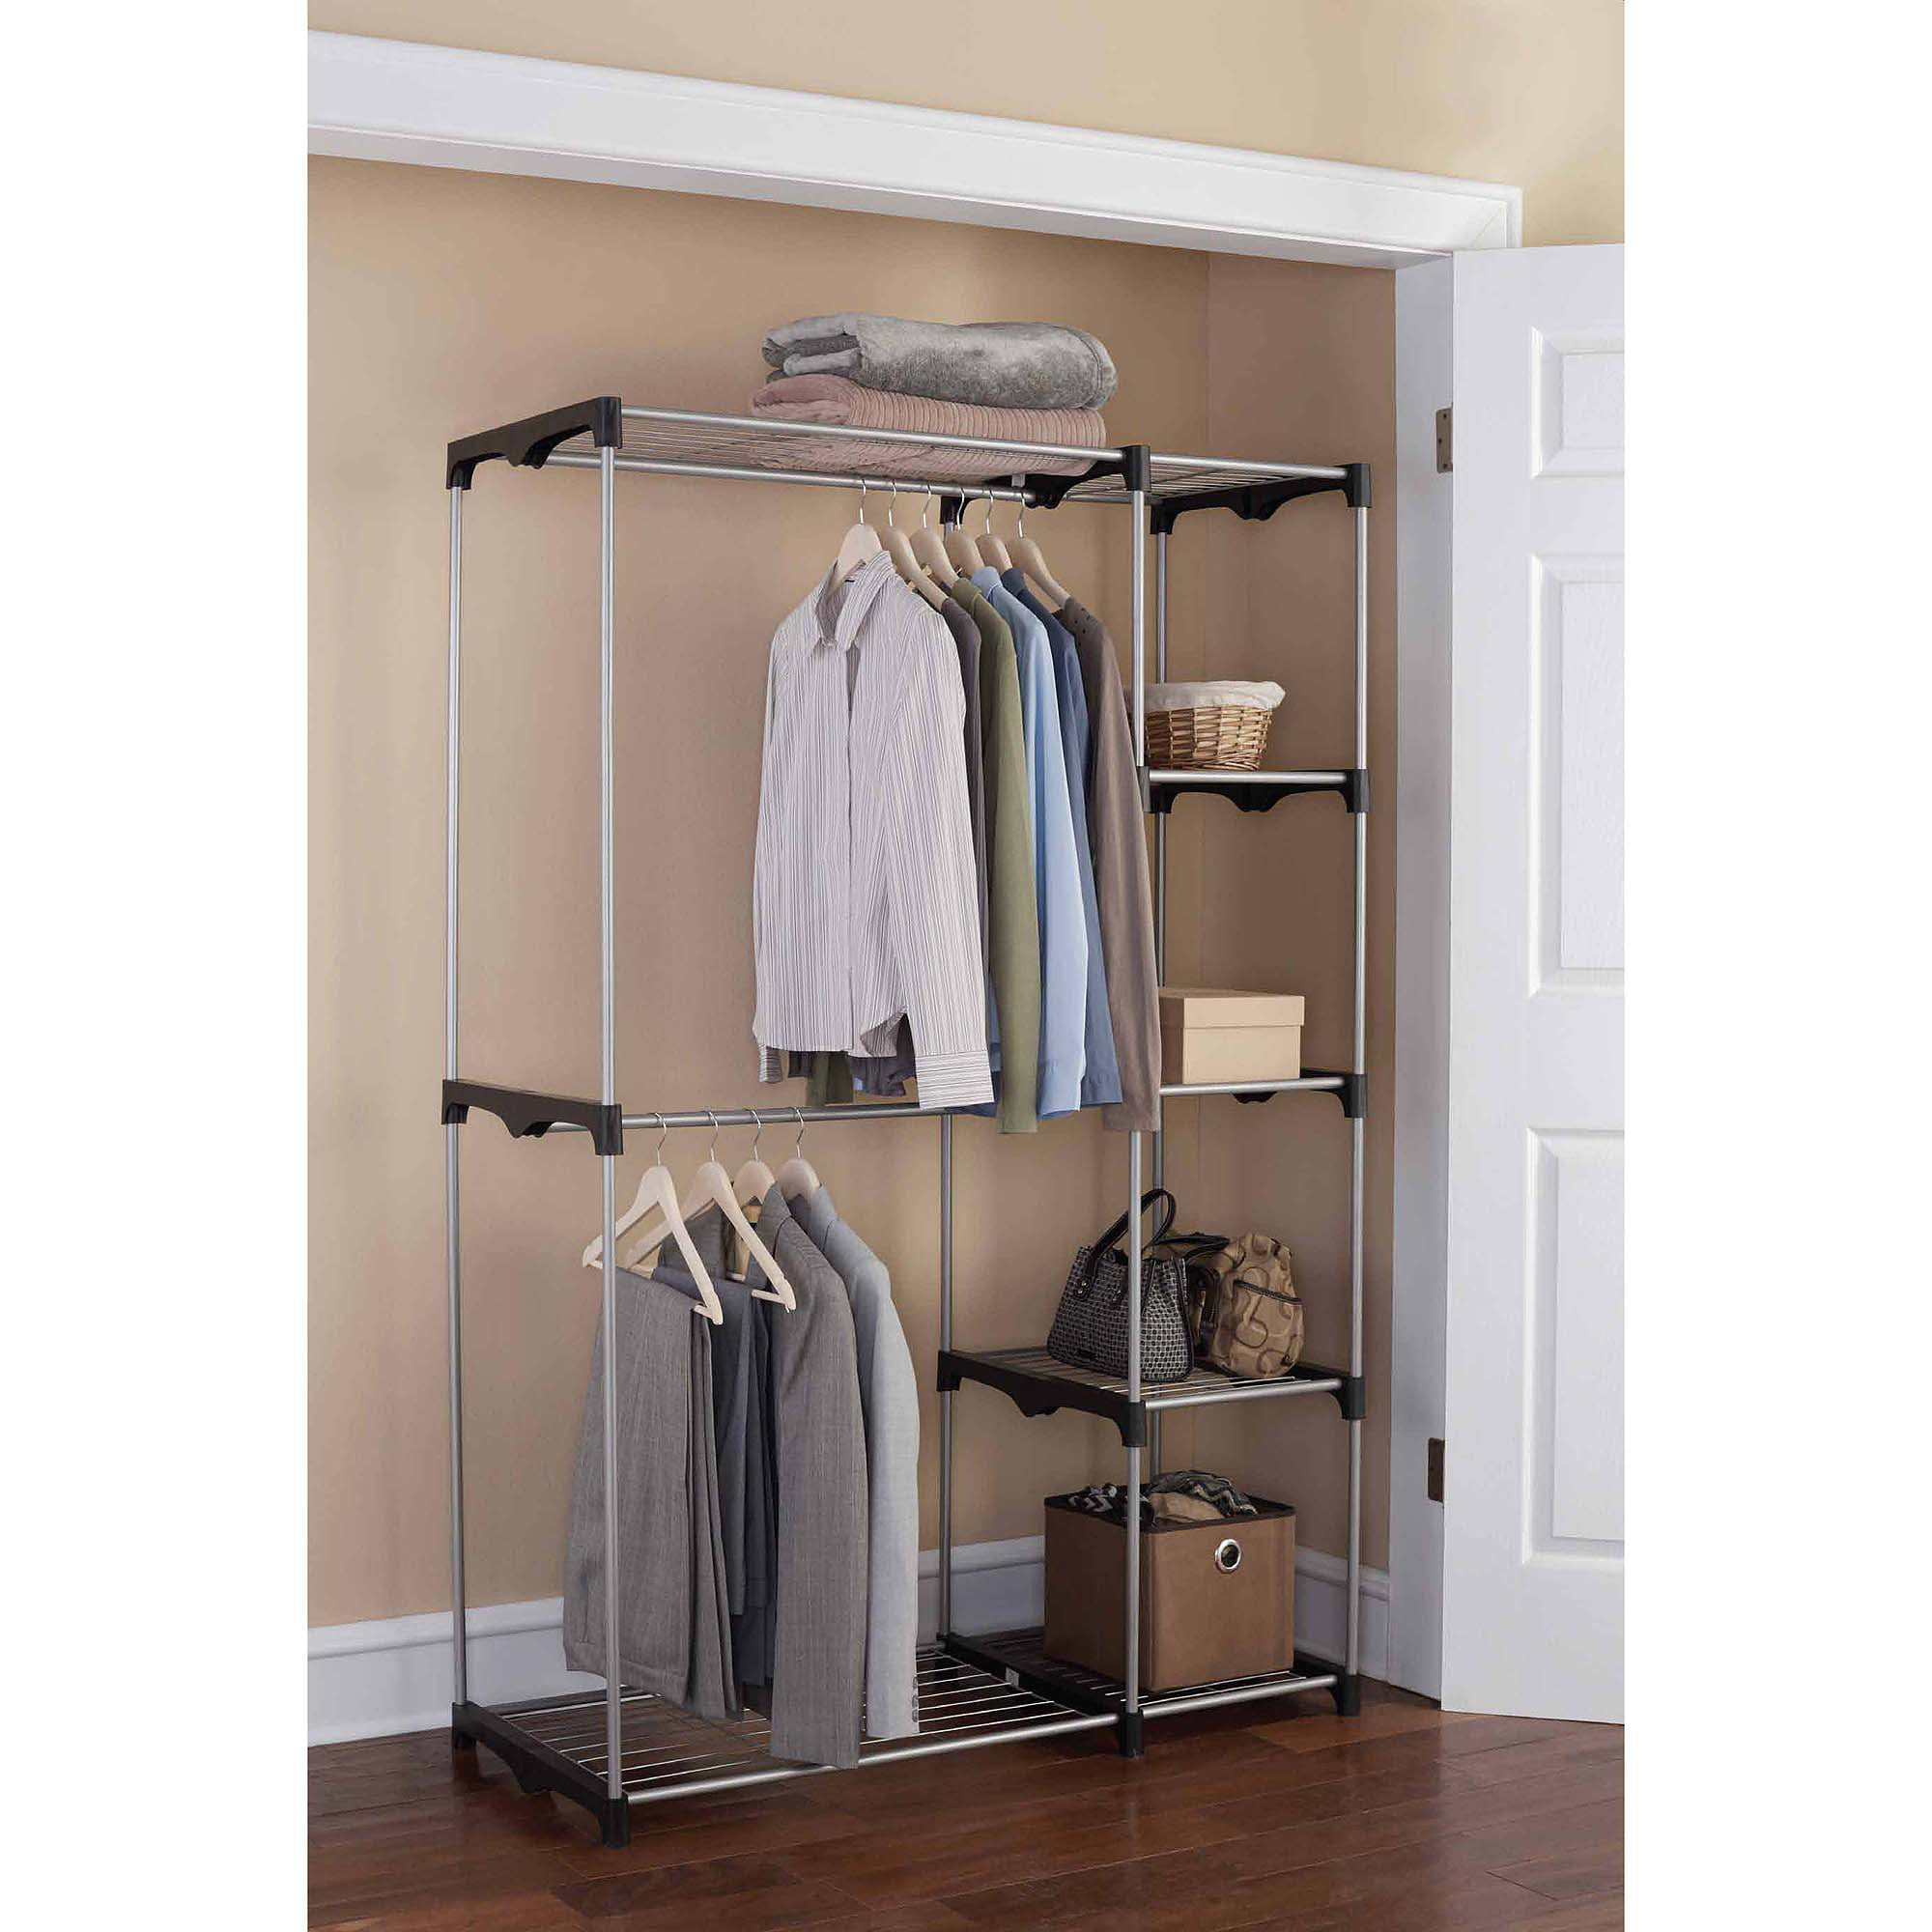 organizer kit products organiser closetmaid ft closet pin superslide